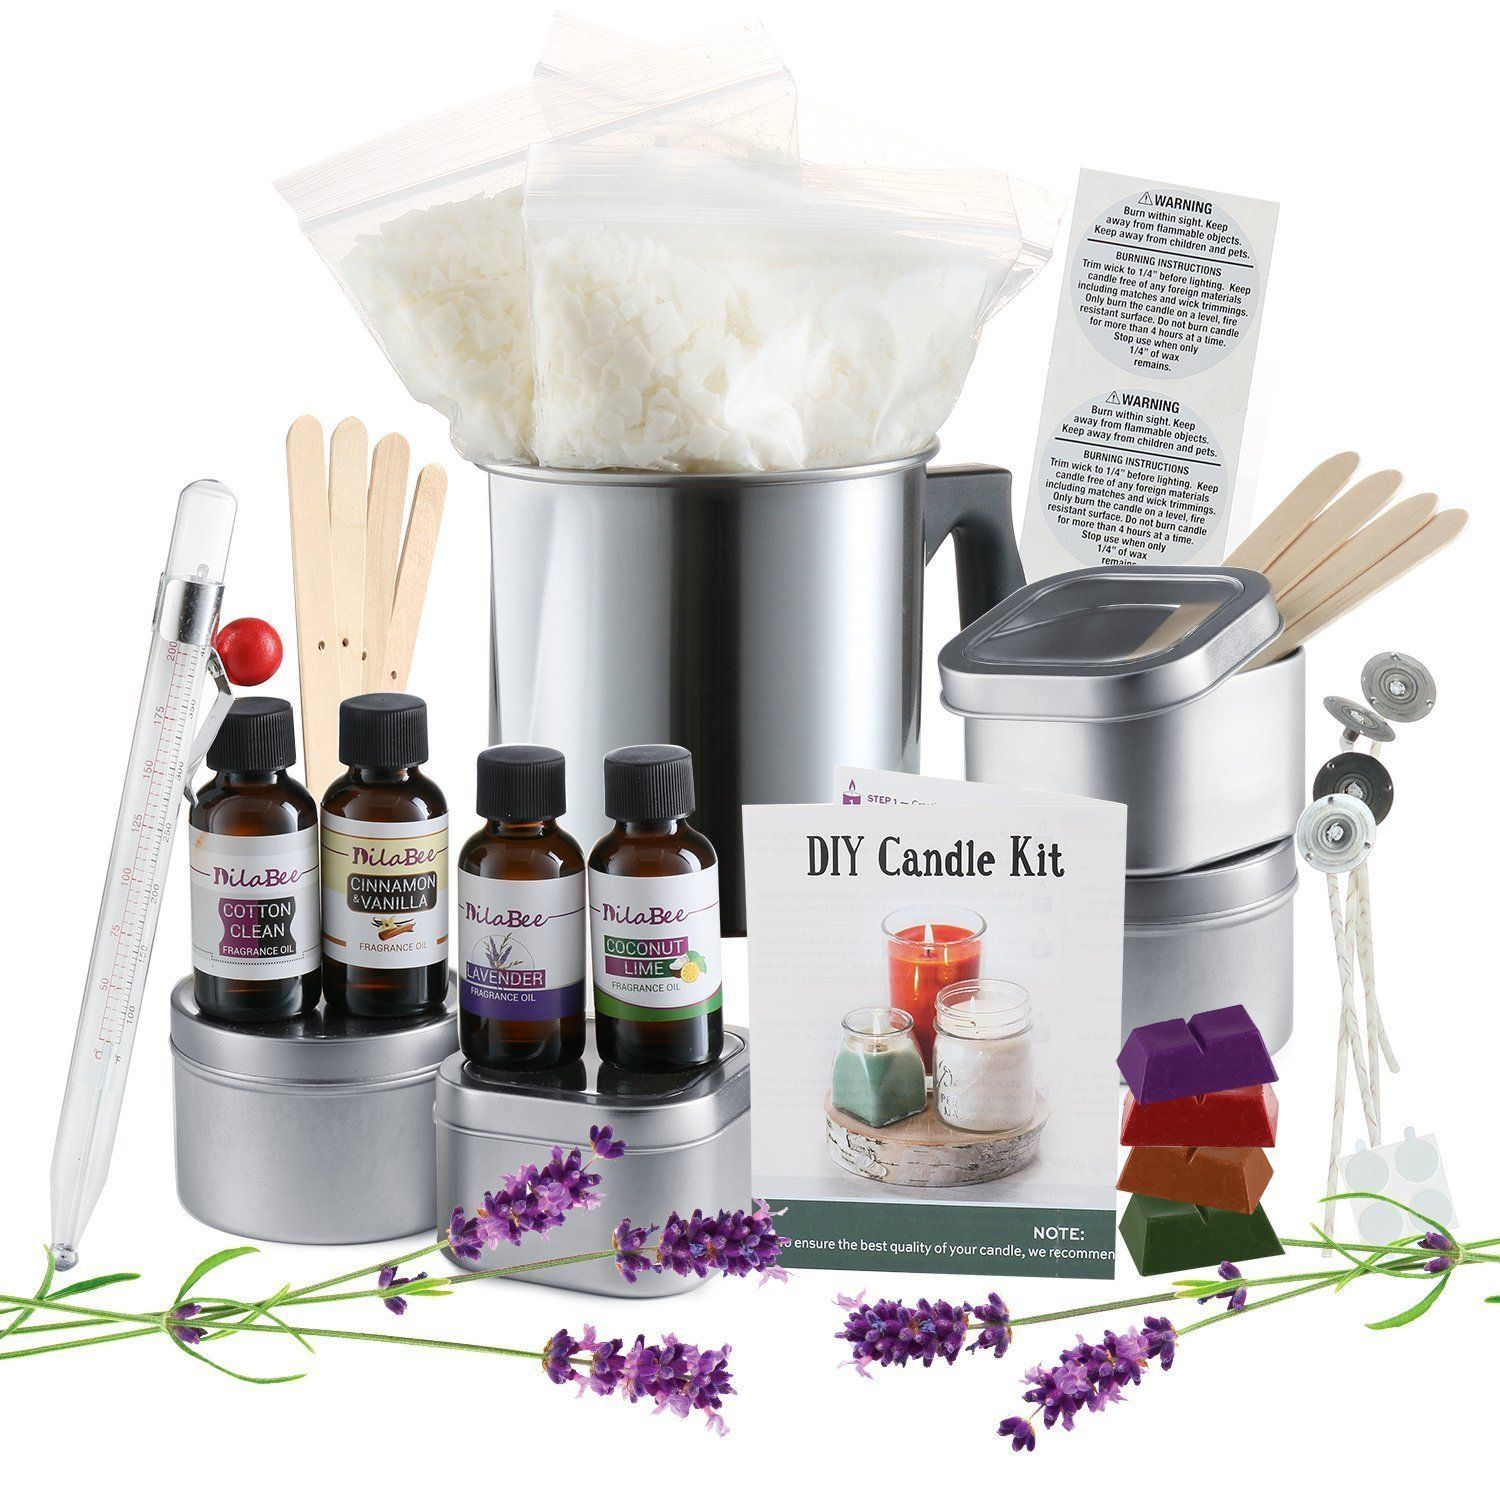 Complete DIY Candle Making Kit Supplies Diy candle